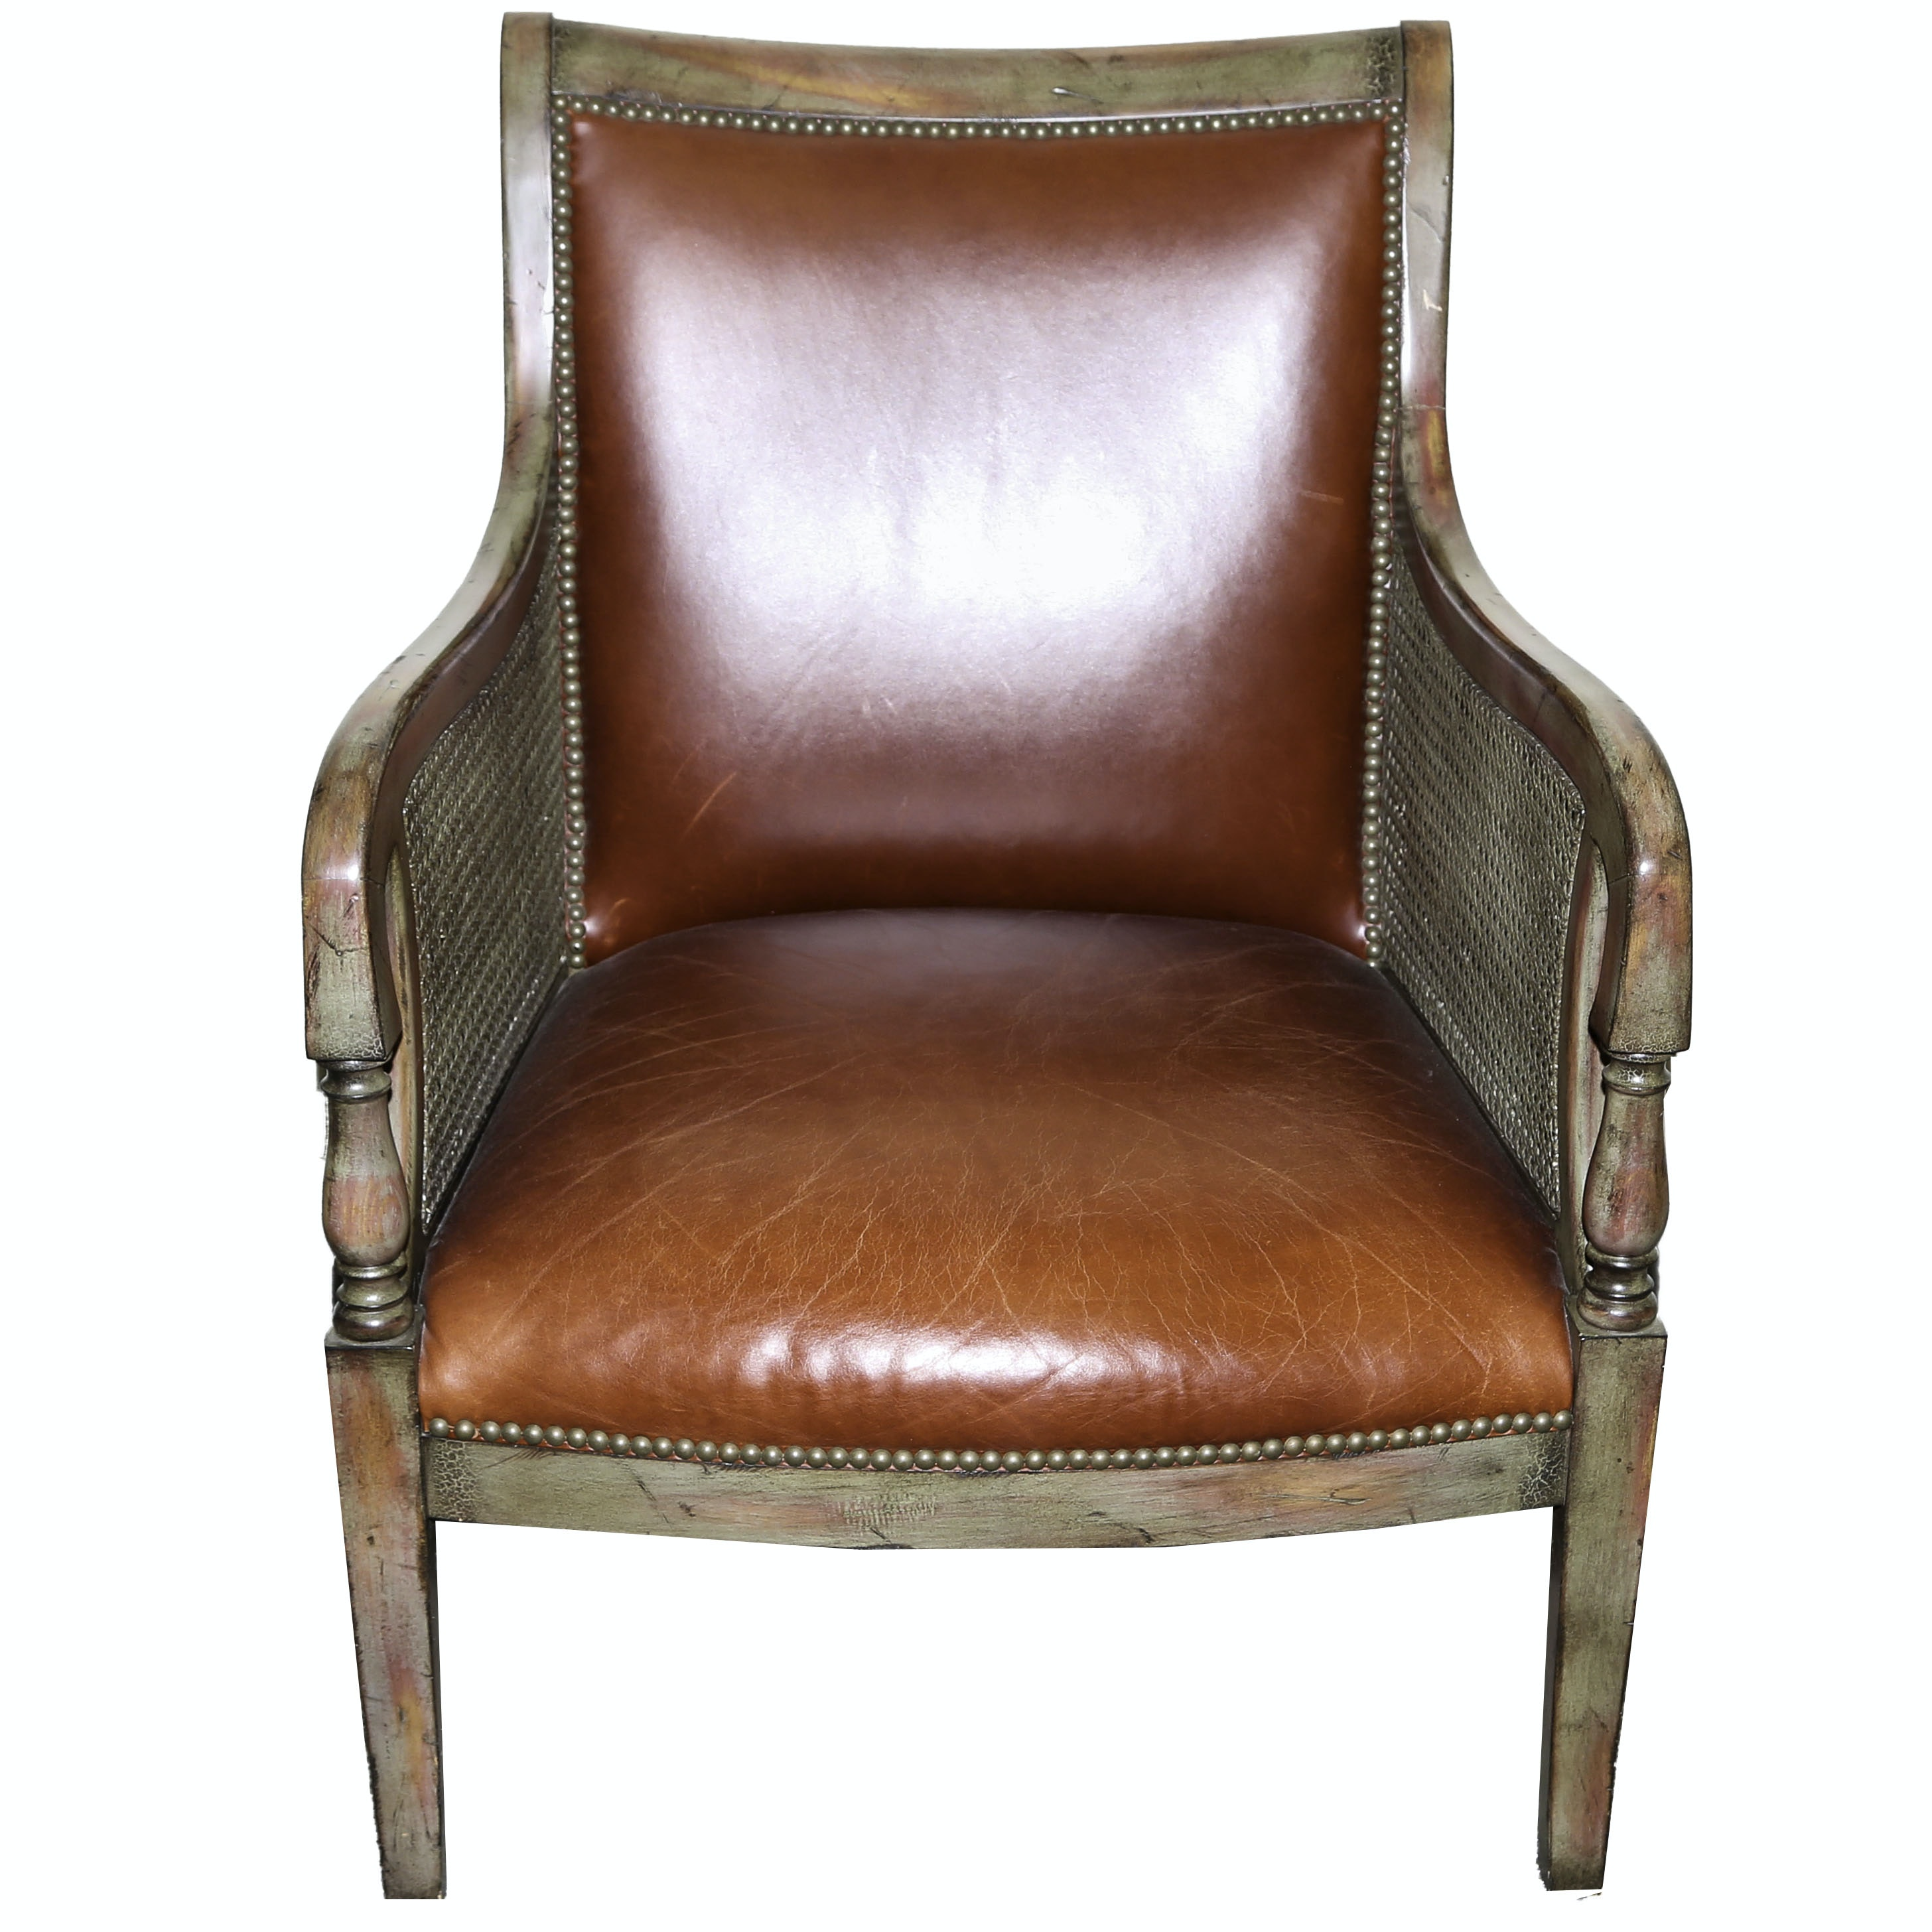 Regency Leather Armchair by Our House Designs